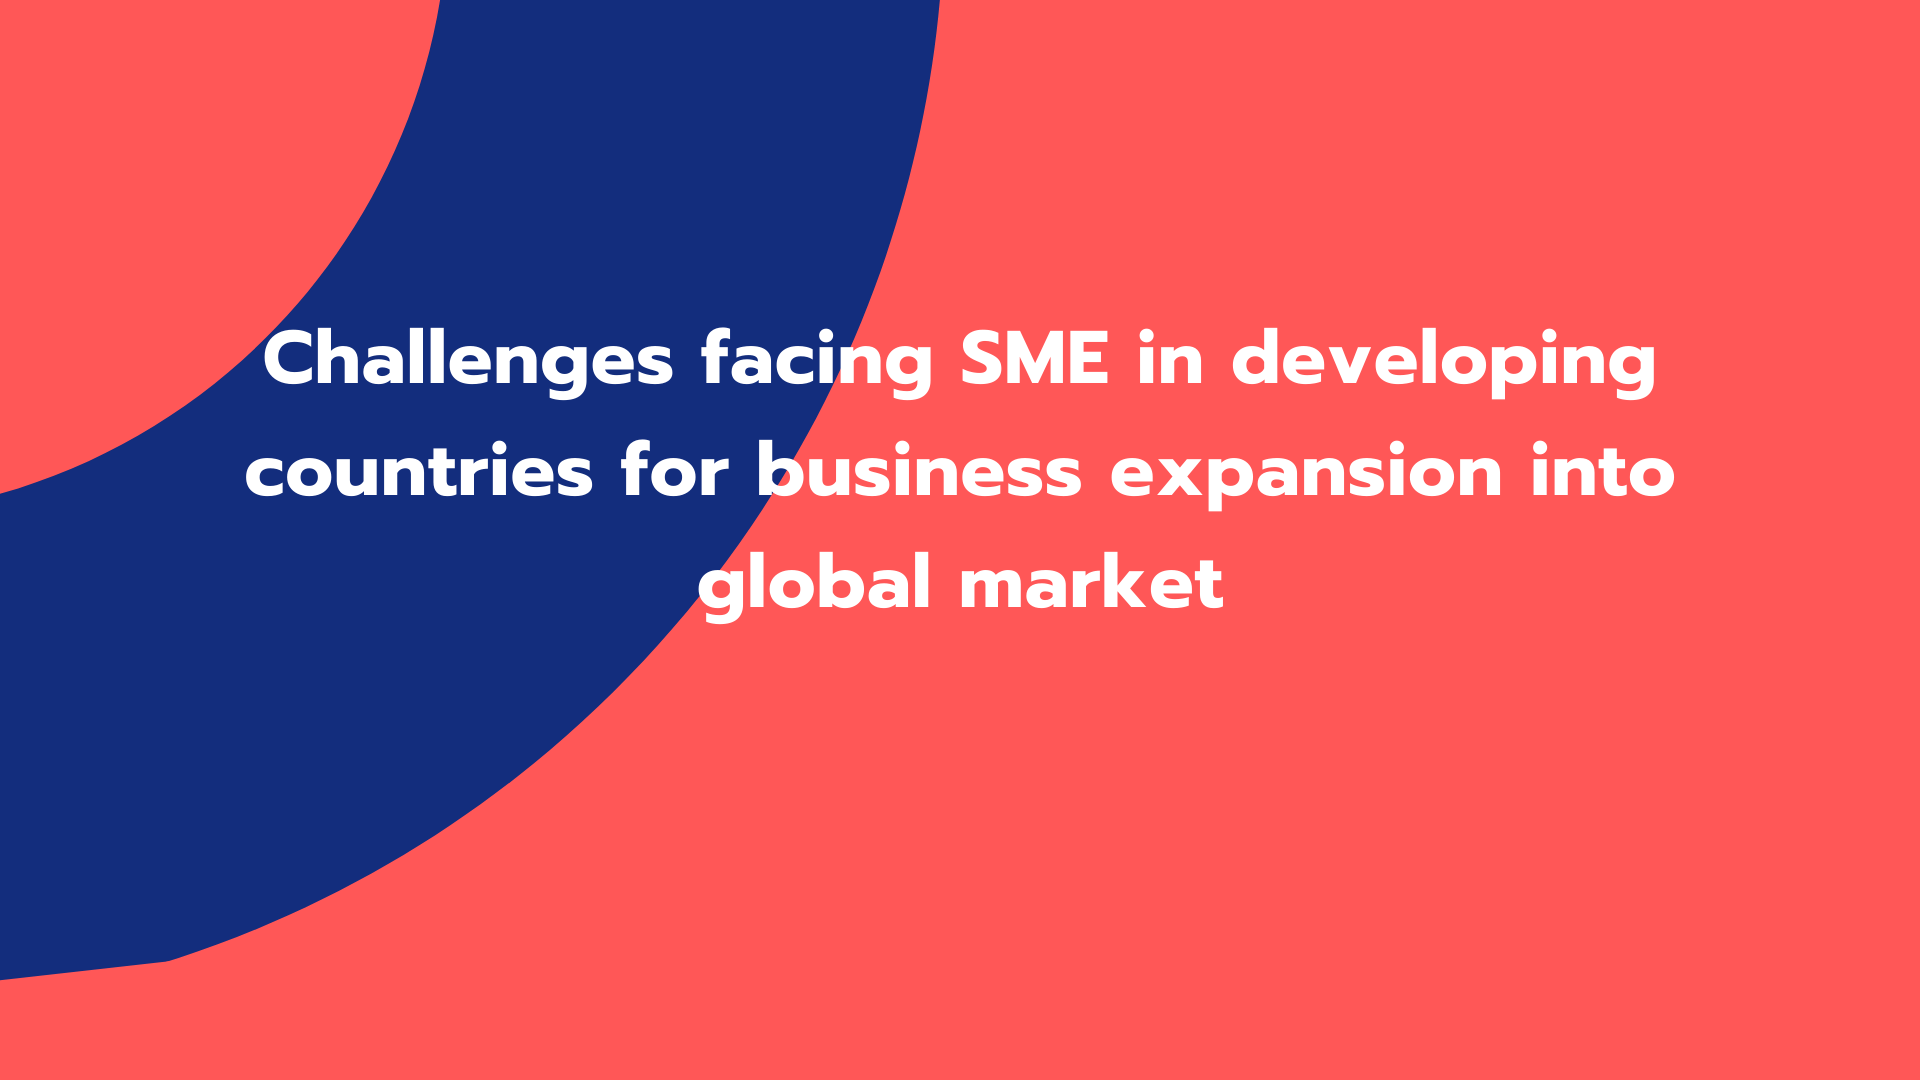 Challenges facing SME in developing countries for business expansion into global market